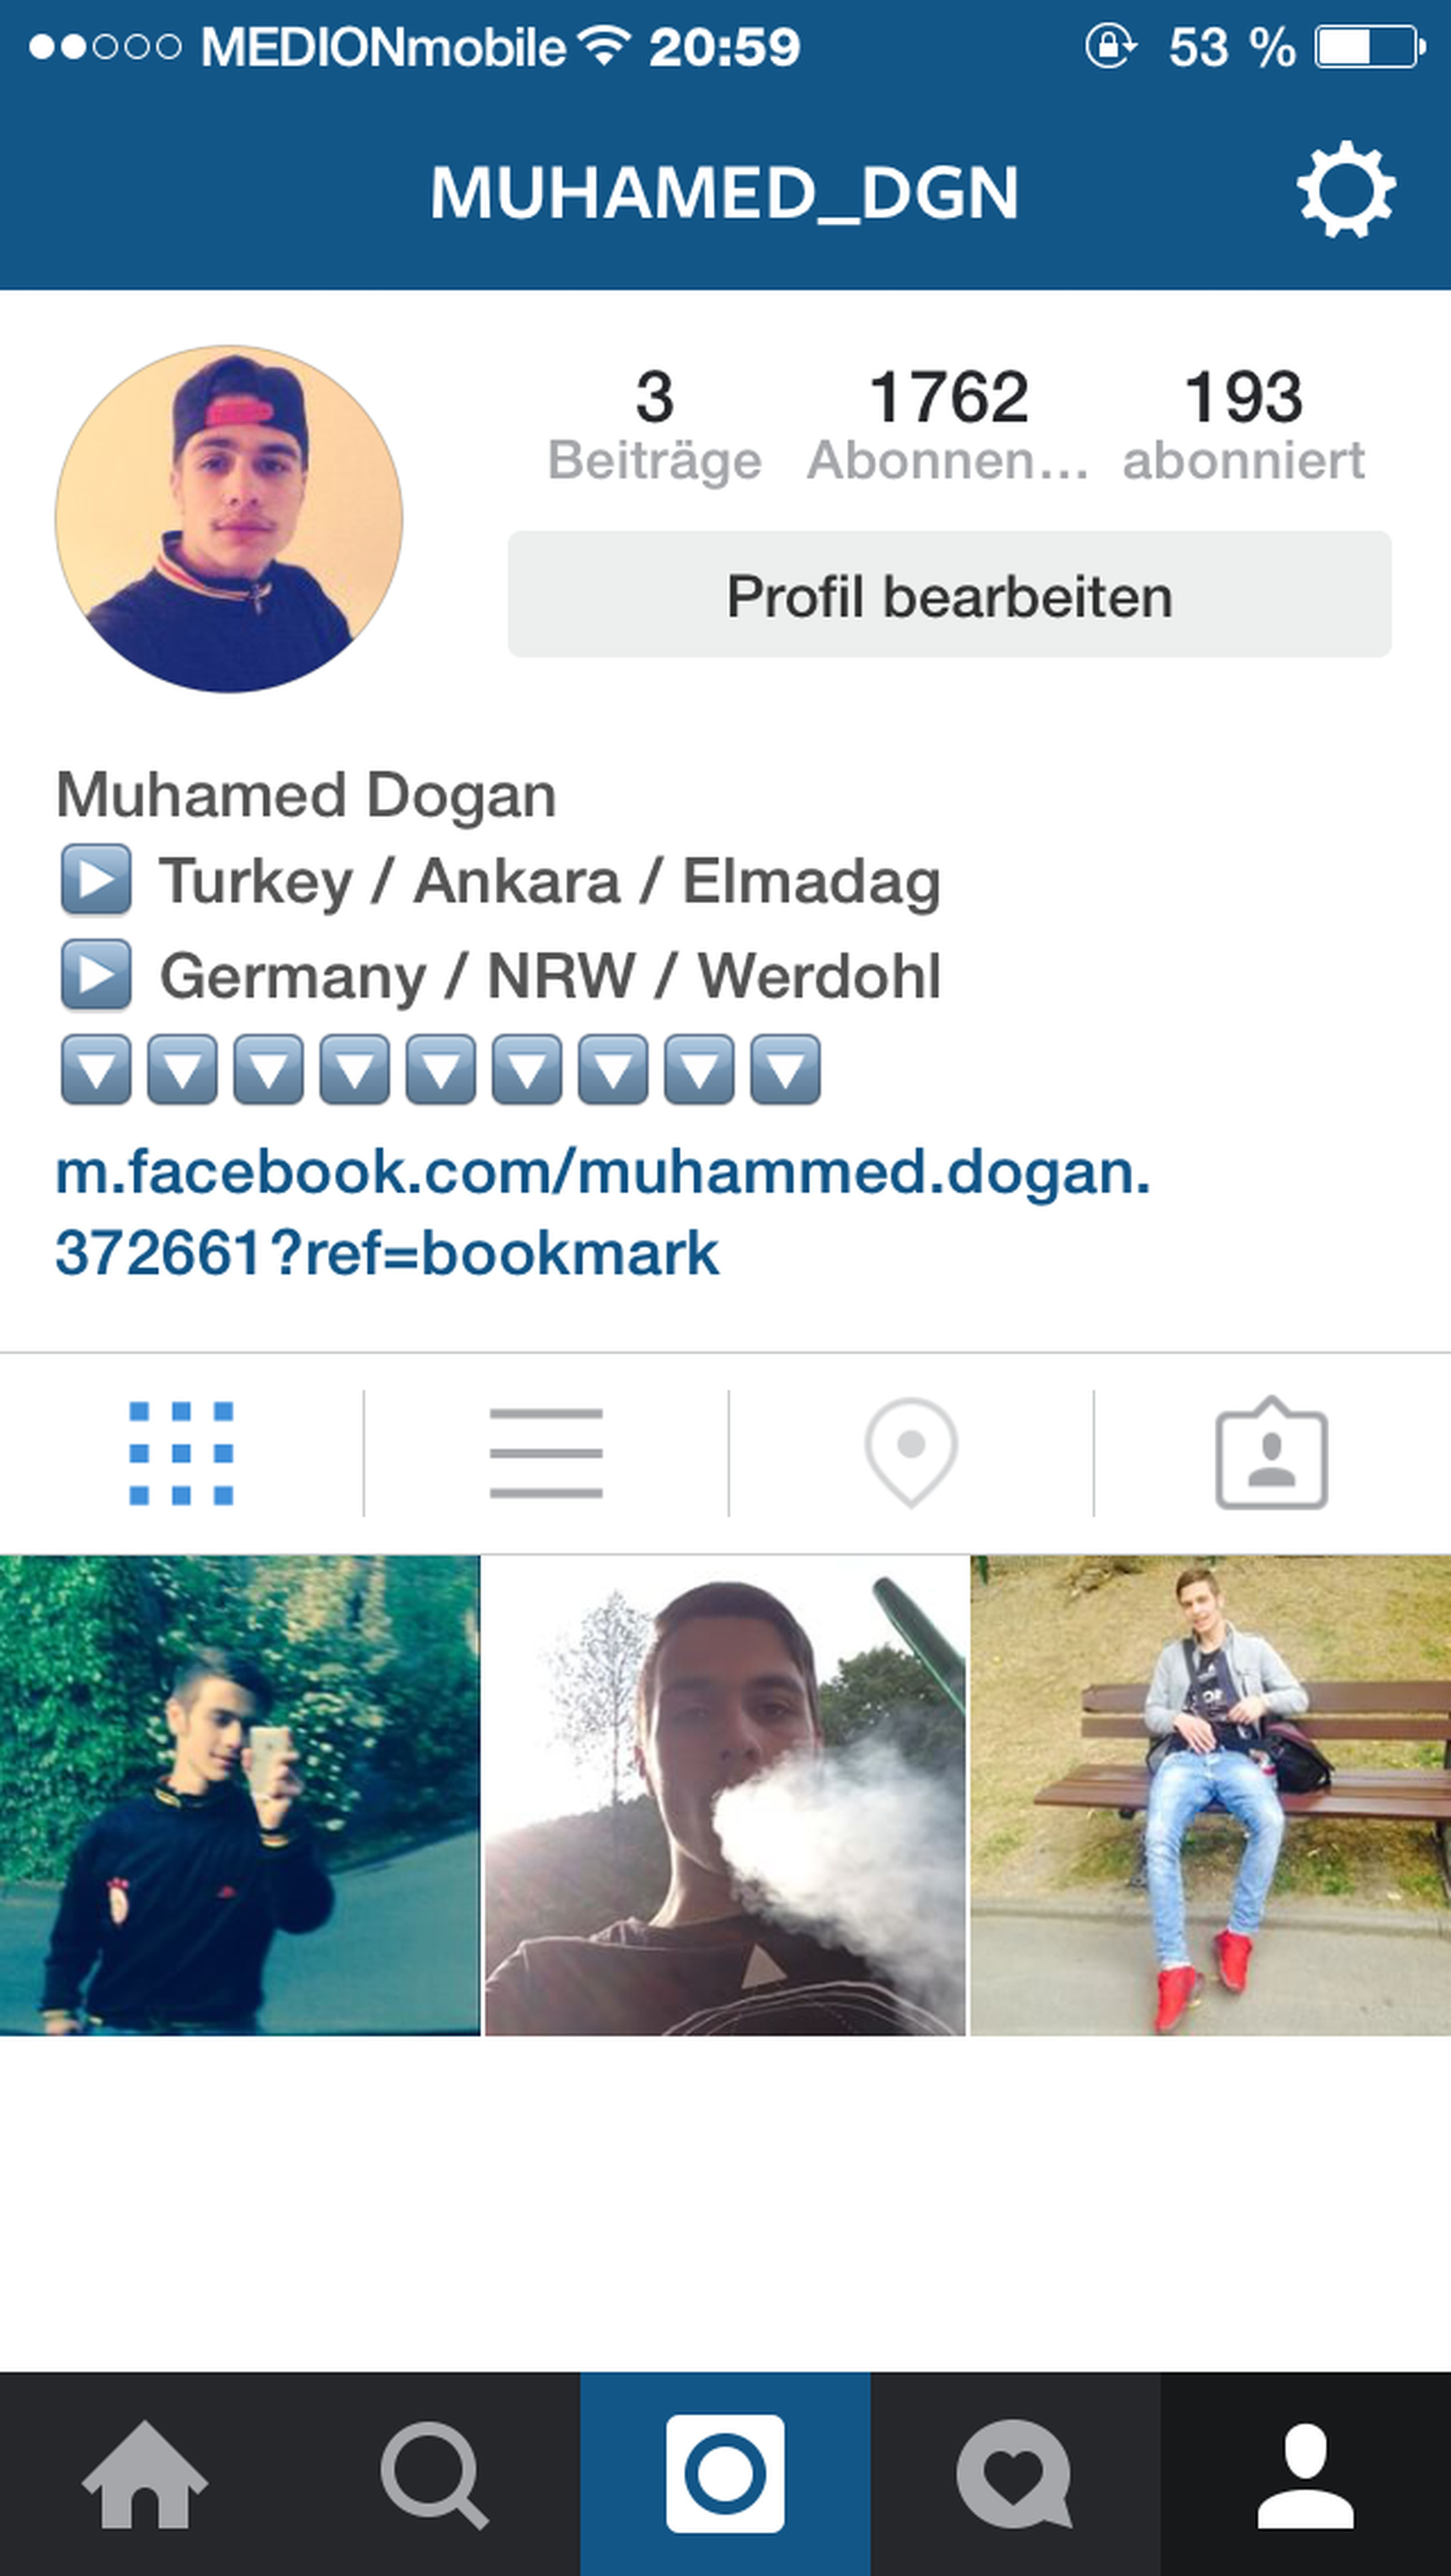 Followme Follow4follow Followerback Instagramcats Instagram 100% Follow Back @muhamed_dgn <3 Love Türkiye